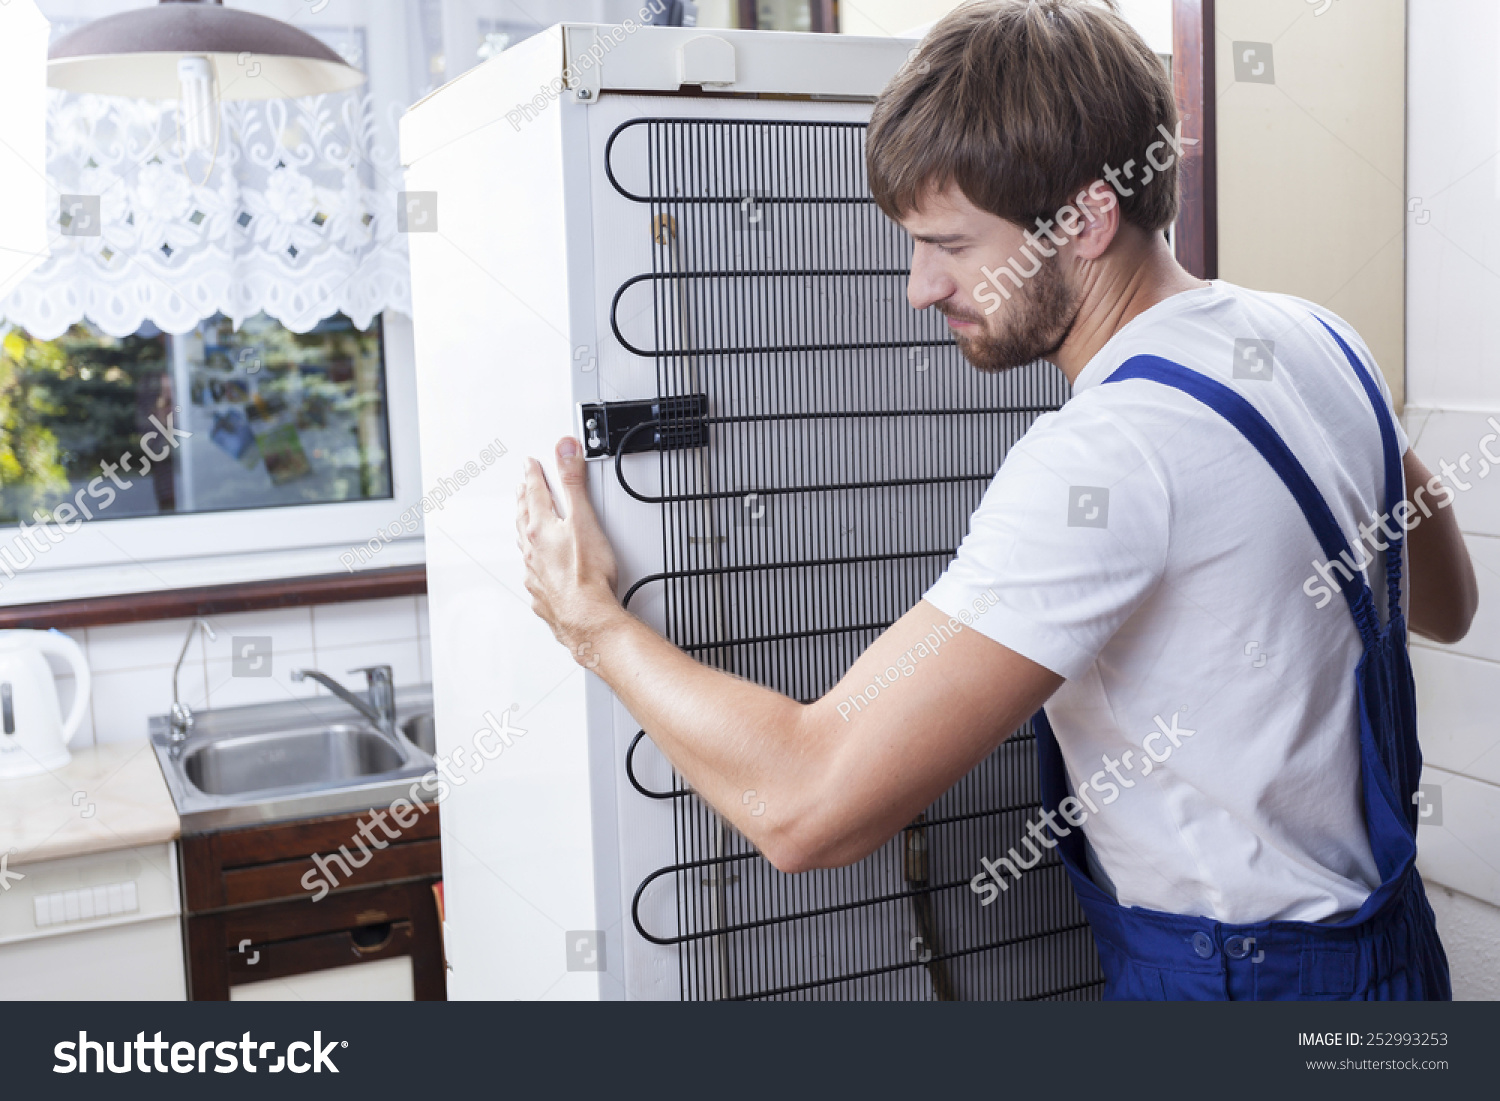 how to move a fridge safely